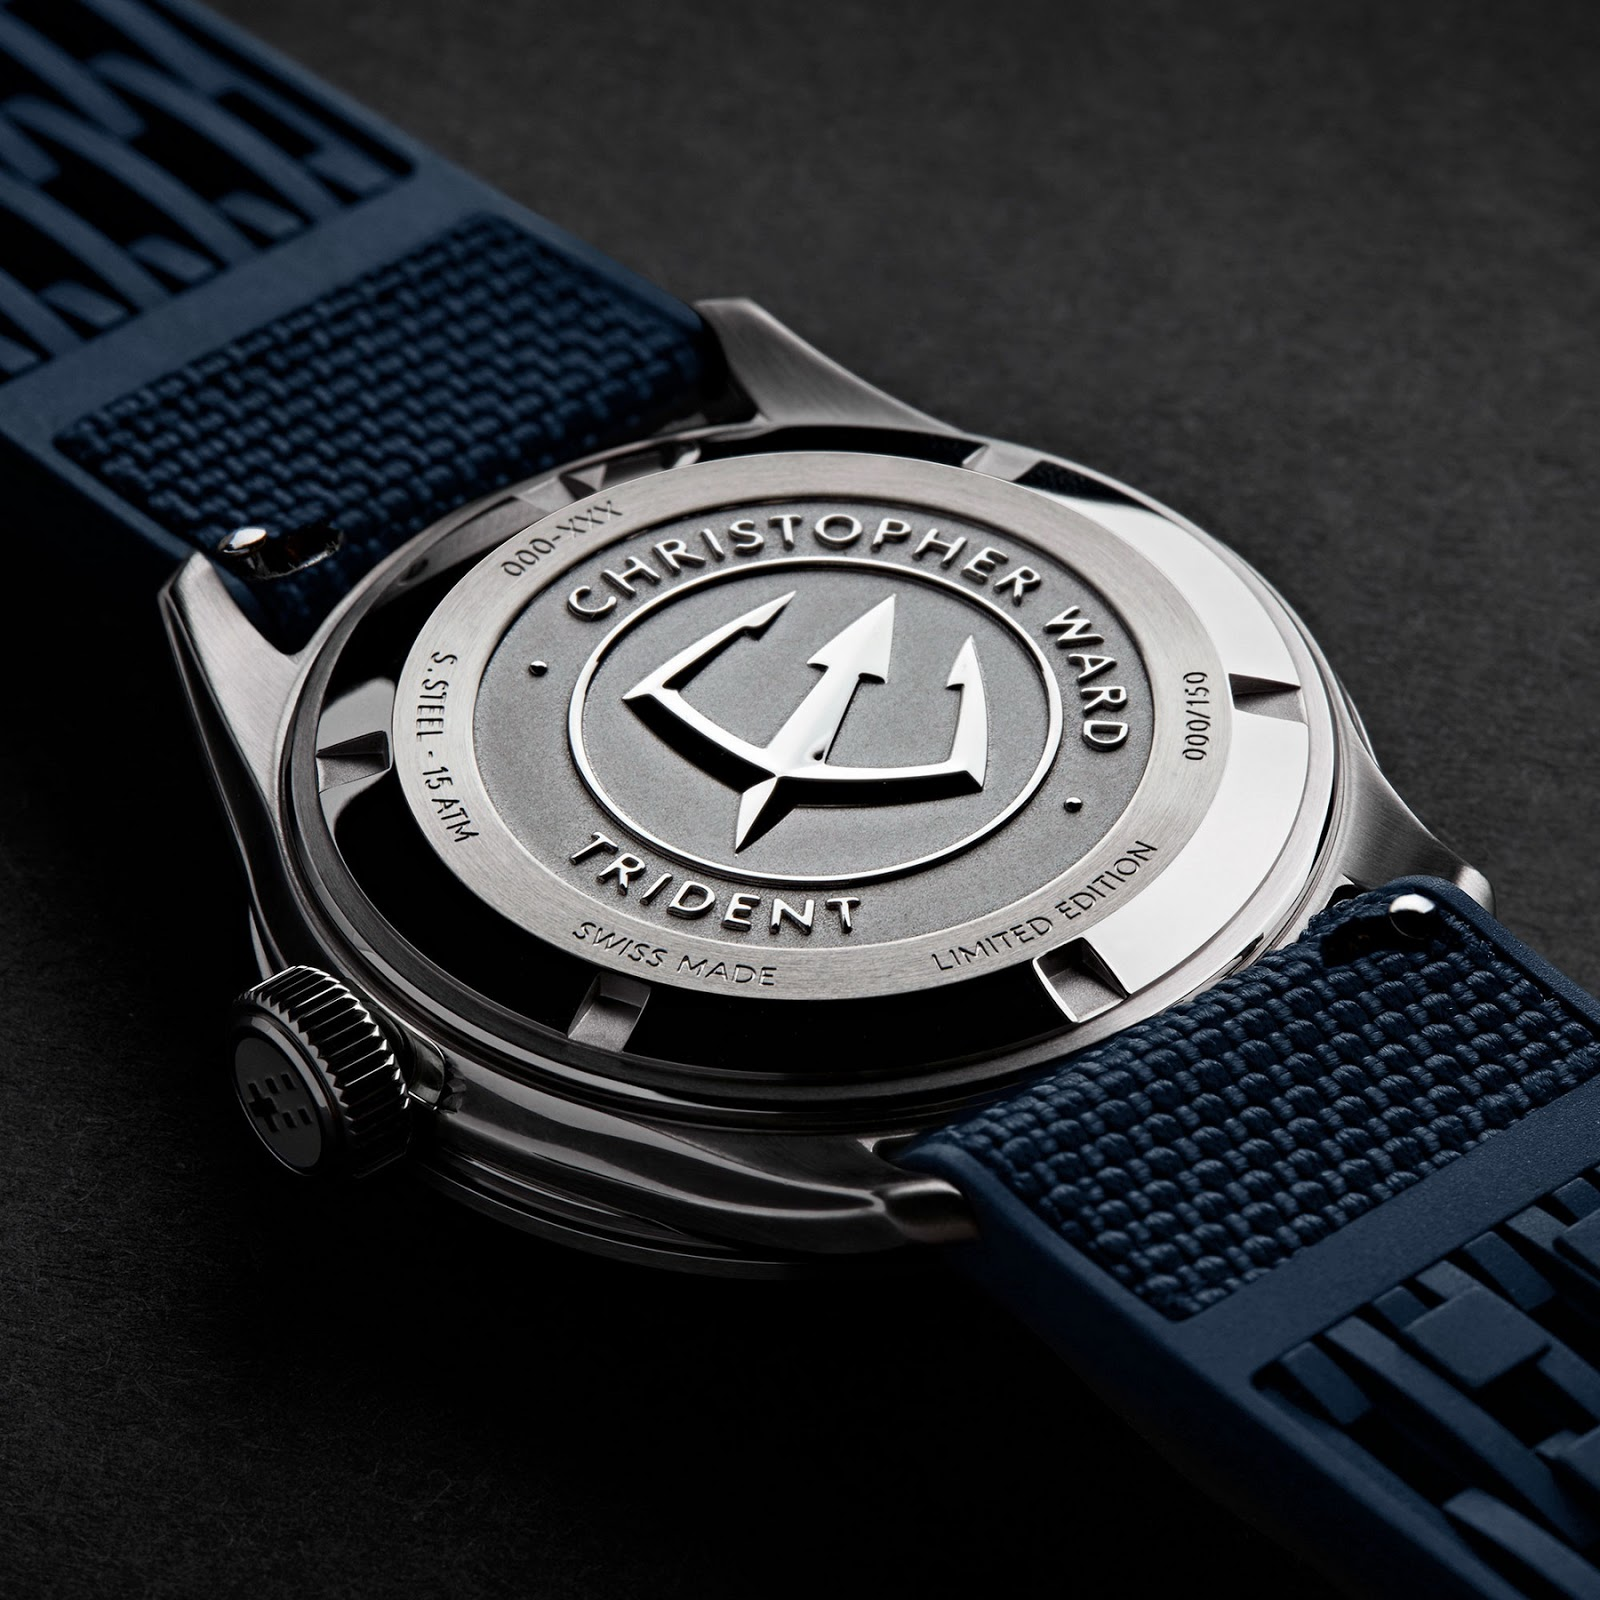 Christopher Ward's new C65 Trident Diver SH21 L.E. CHRISTOPHER%2BWARD%2BC65%2BTrident%2BDiver%2BSH21%2BLIMITED%2BEDITION%2B08